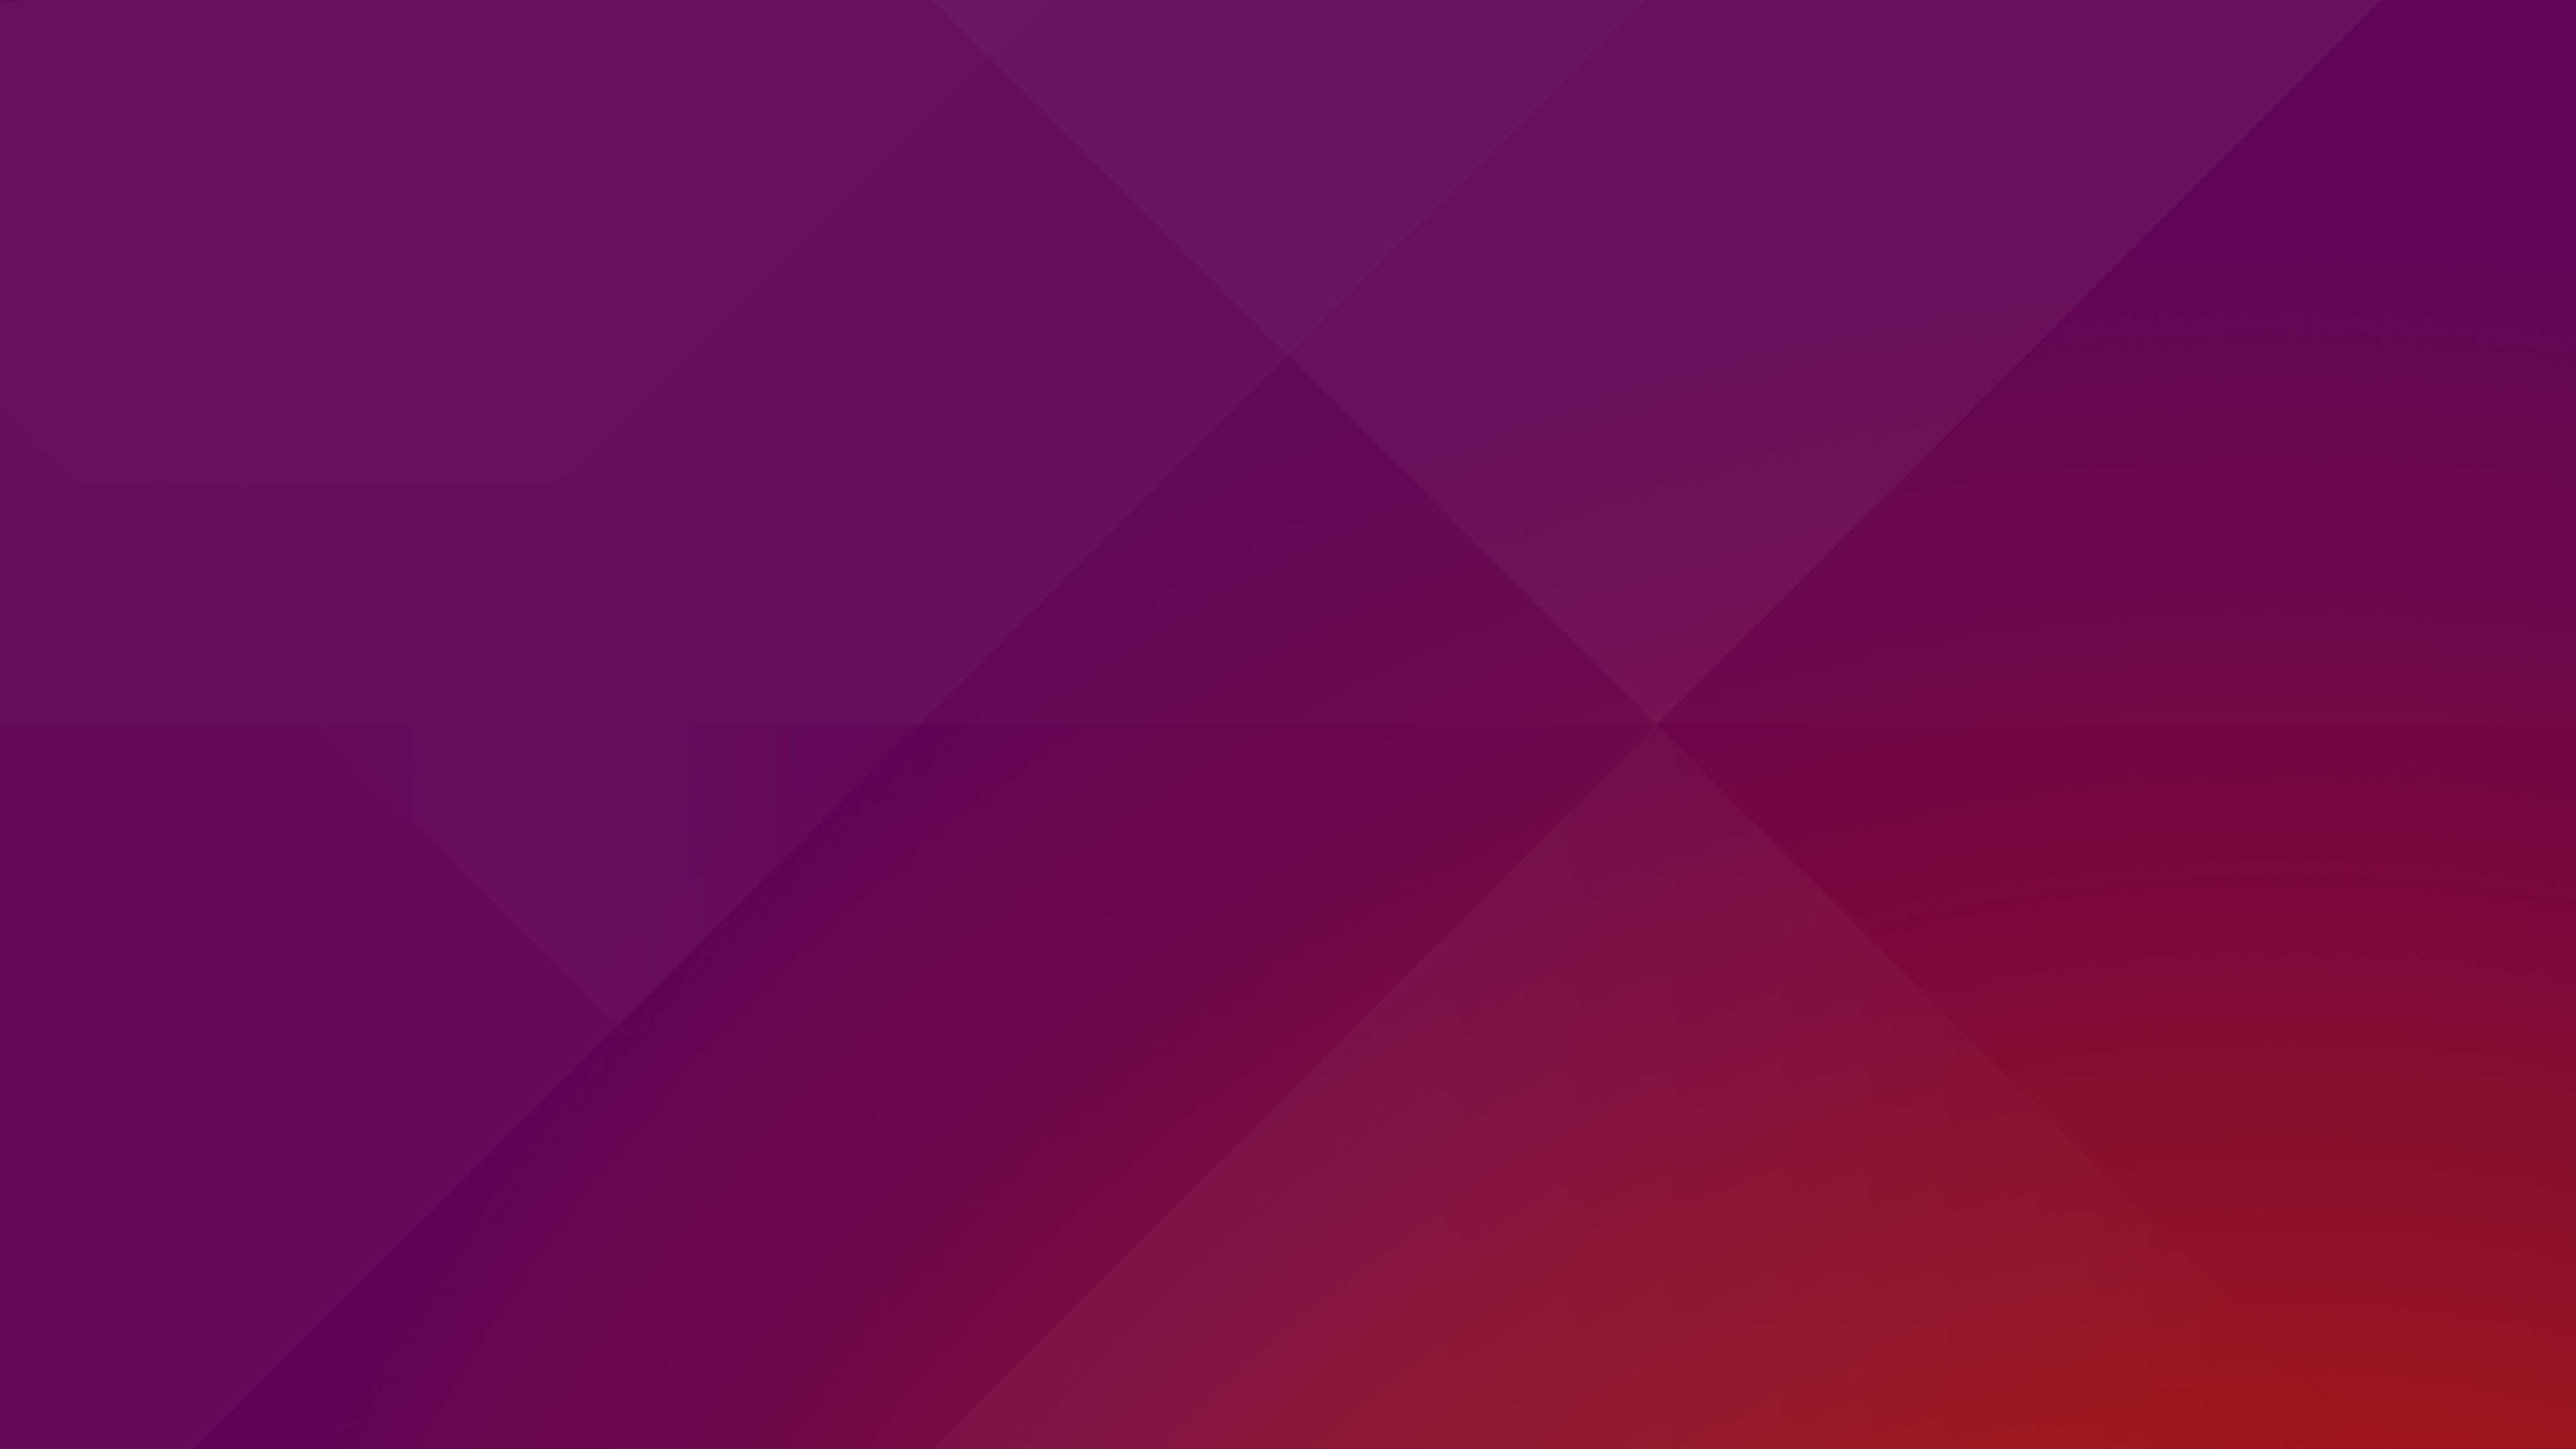 This is the Default Desktop Wallpaper for Ubuntu 1610 4096x2304